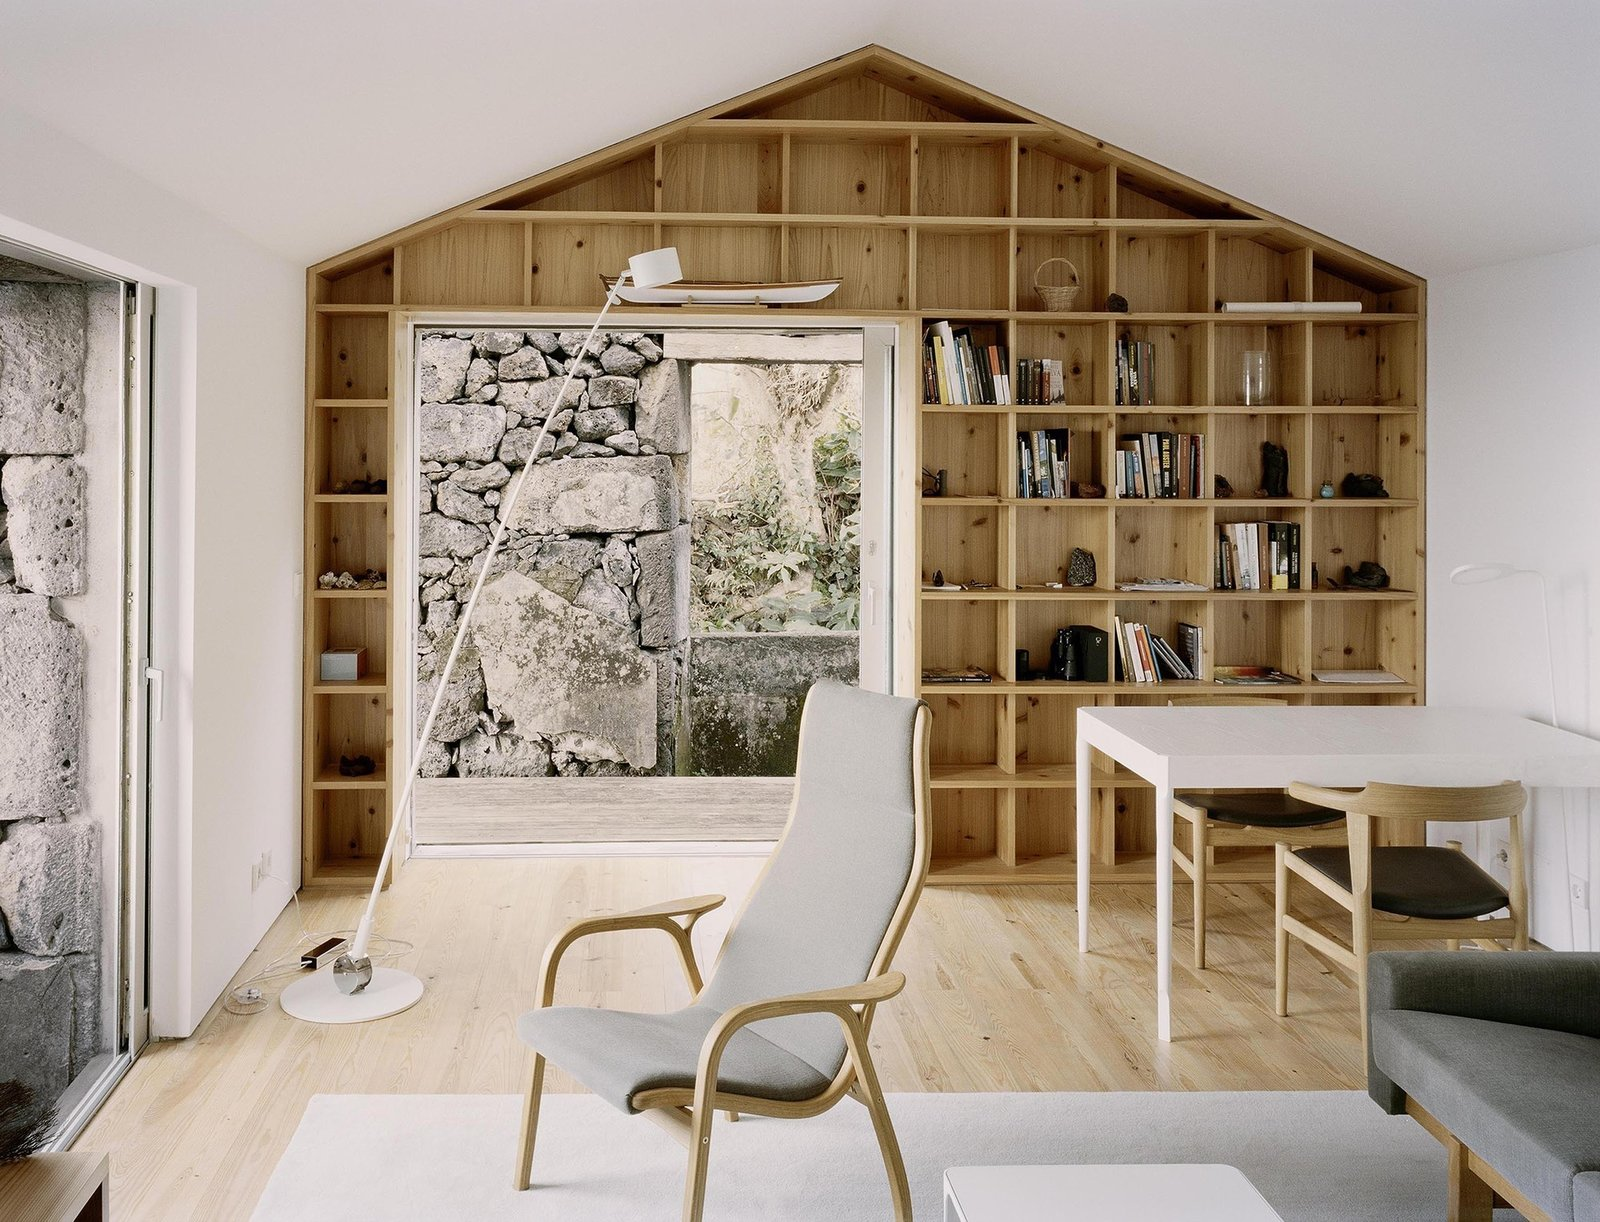 The interiors frame selective views of the existing rock walls, and contrast them with light finishes of white walls and wood furniture and shelving.